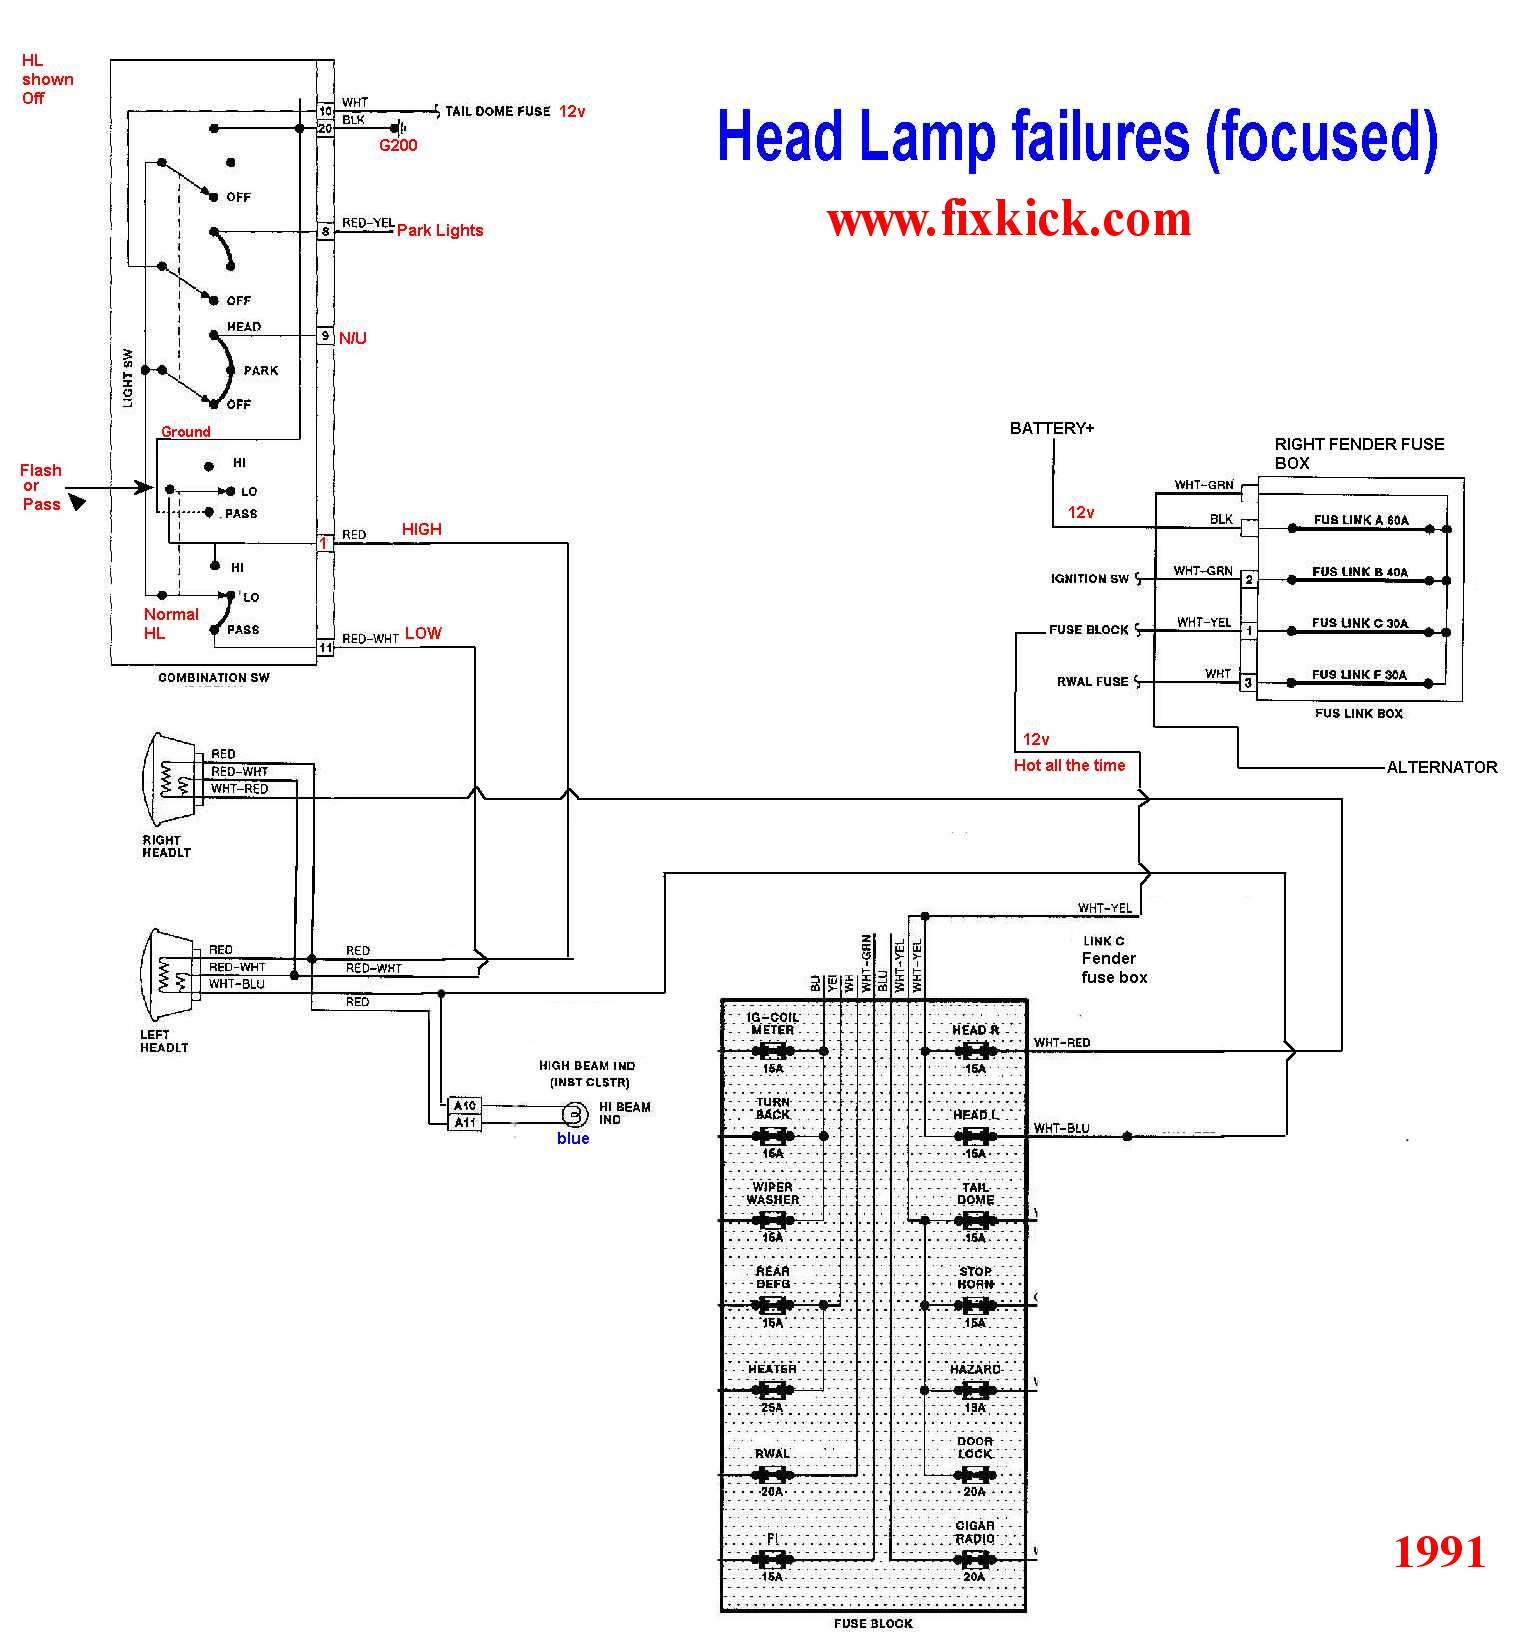 HL1A schematics to run engine geo metro wiring diagram at bakdesigns.co